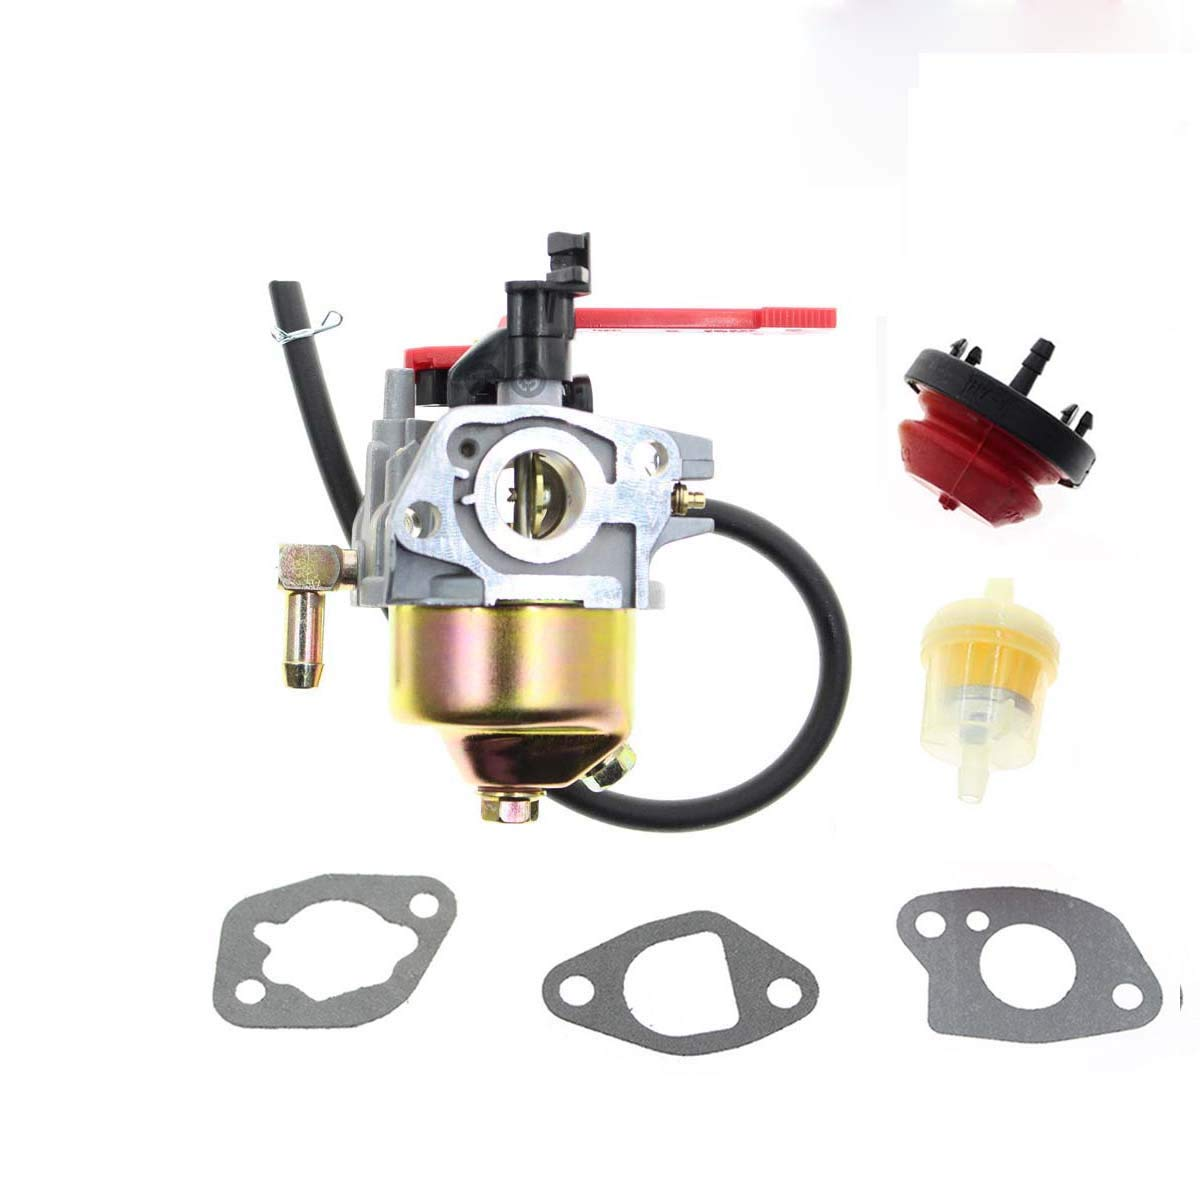 GooDeal Carburetor for Troy Bilt MTD 951-10956A Craftsman Yard Machines Snow Blower Thrower